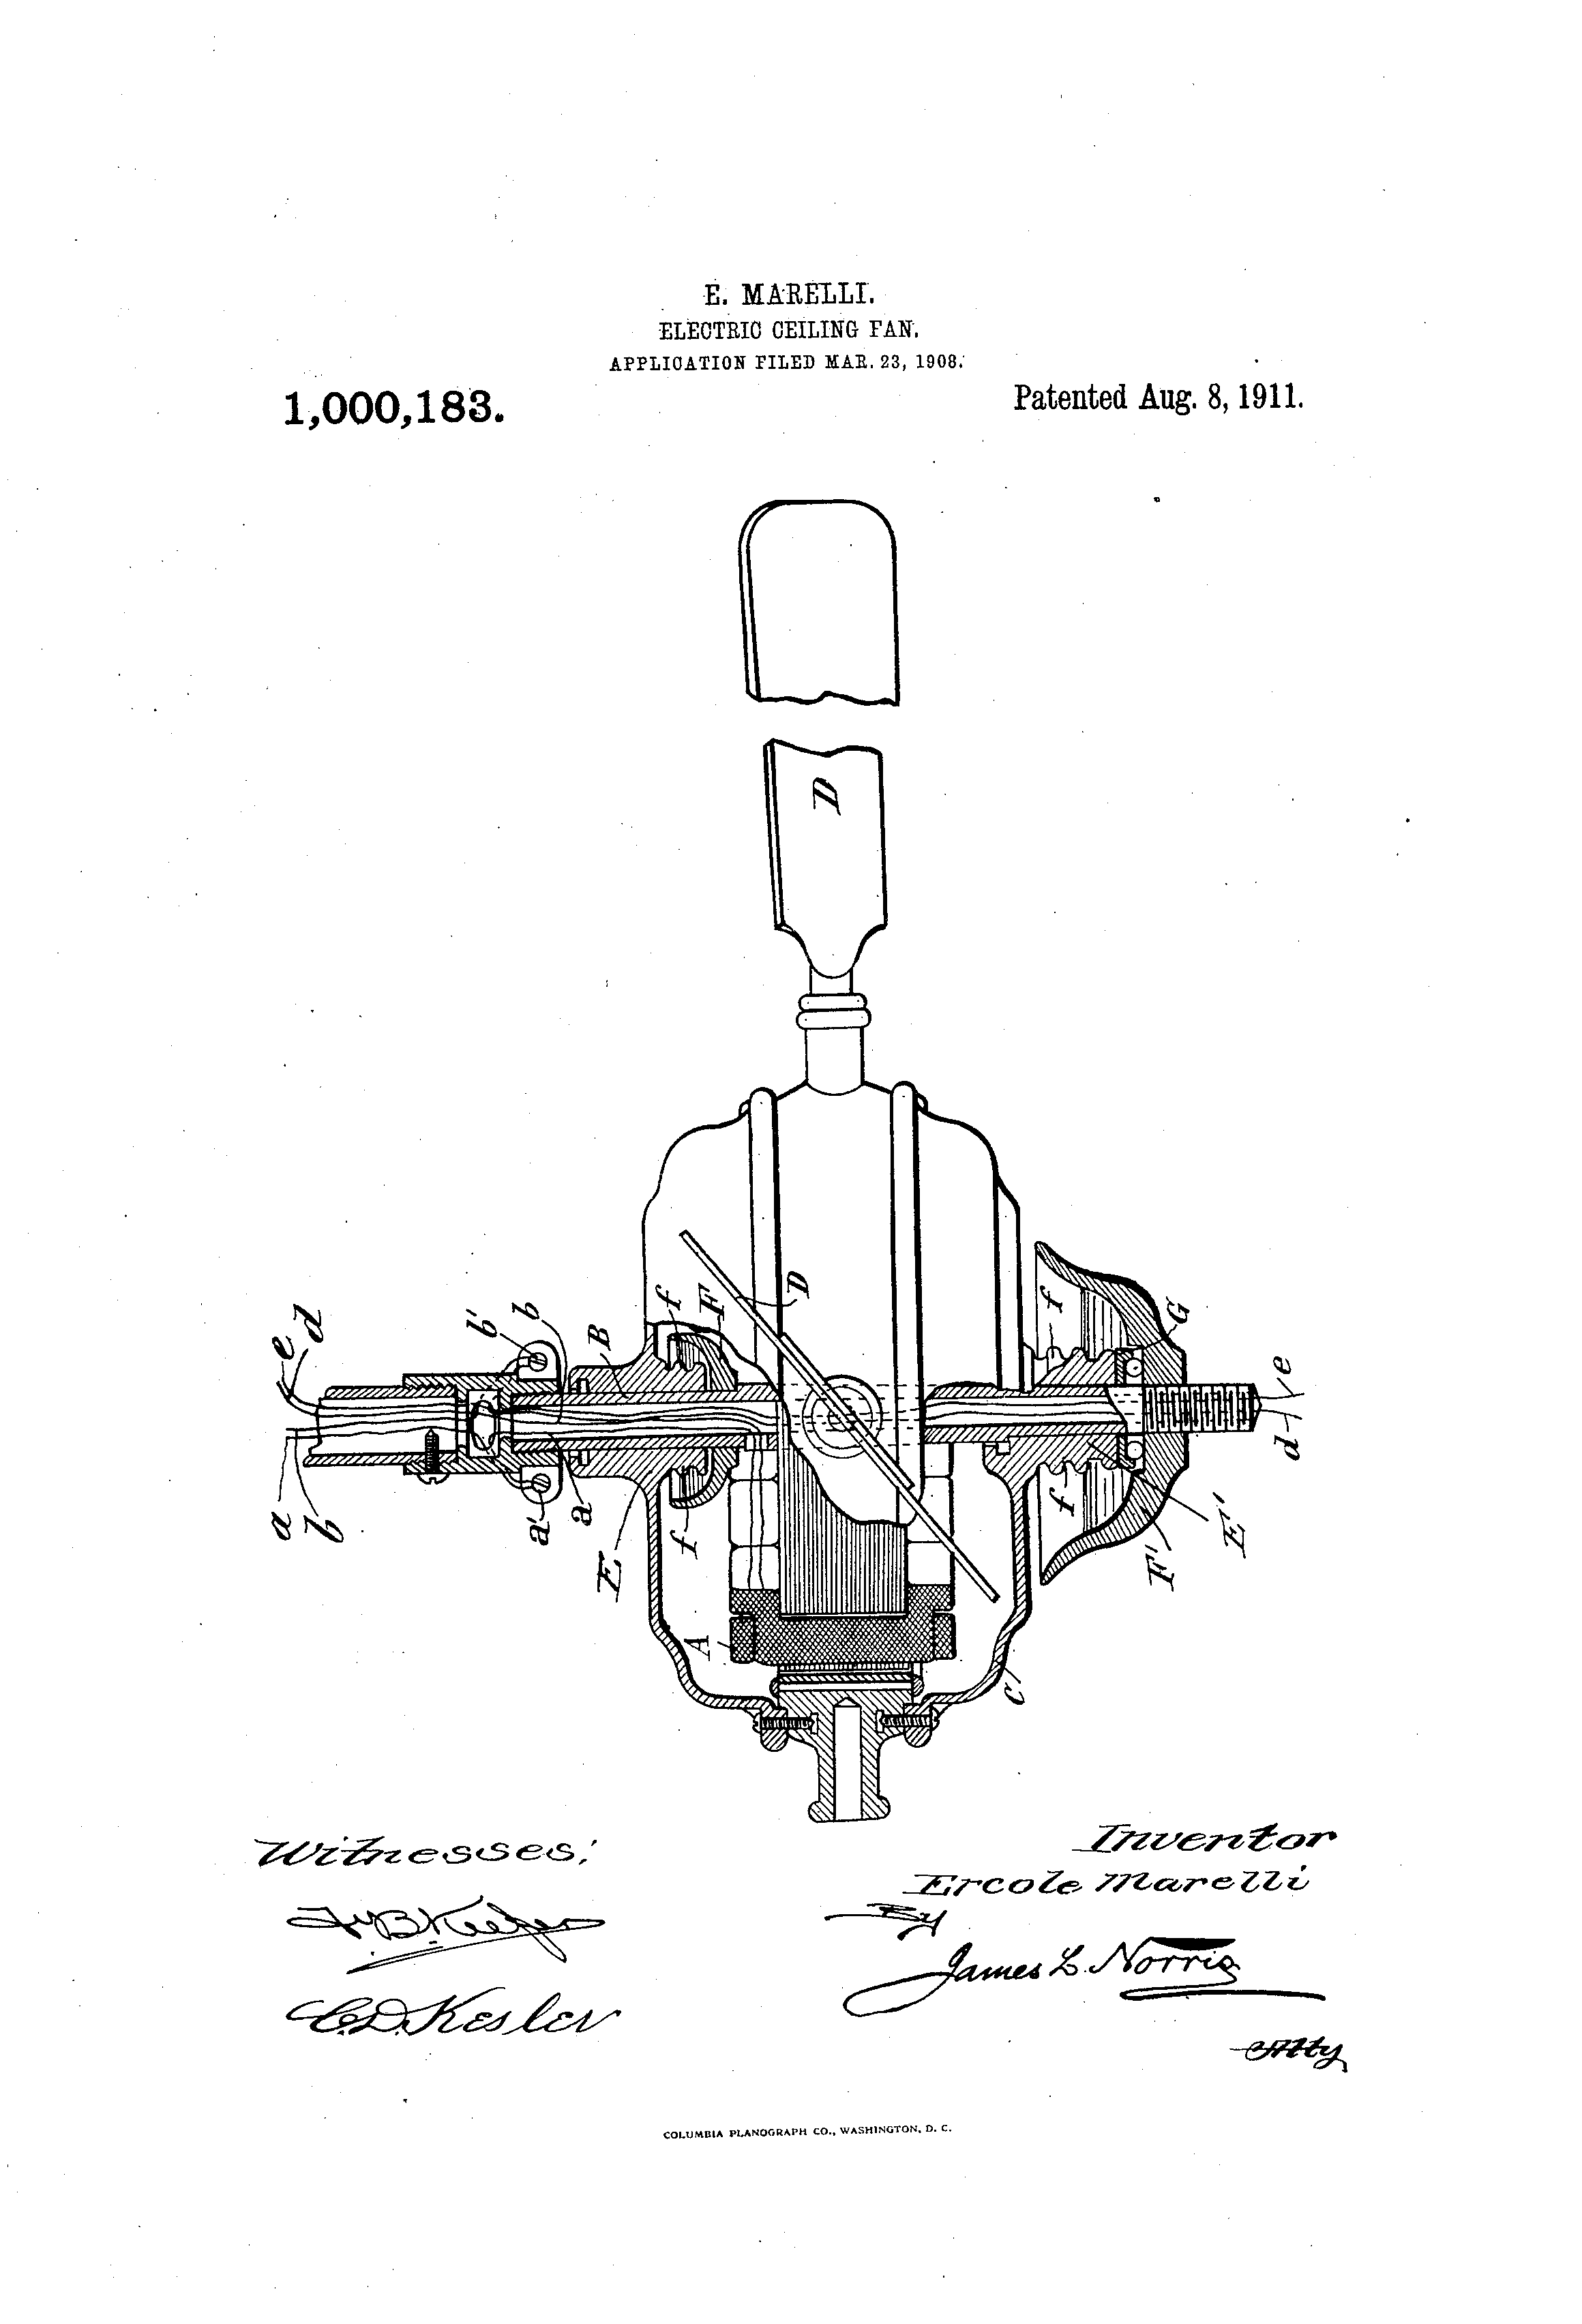 Electric ceiling fan marelli patent.png